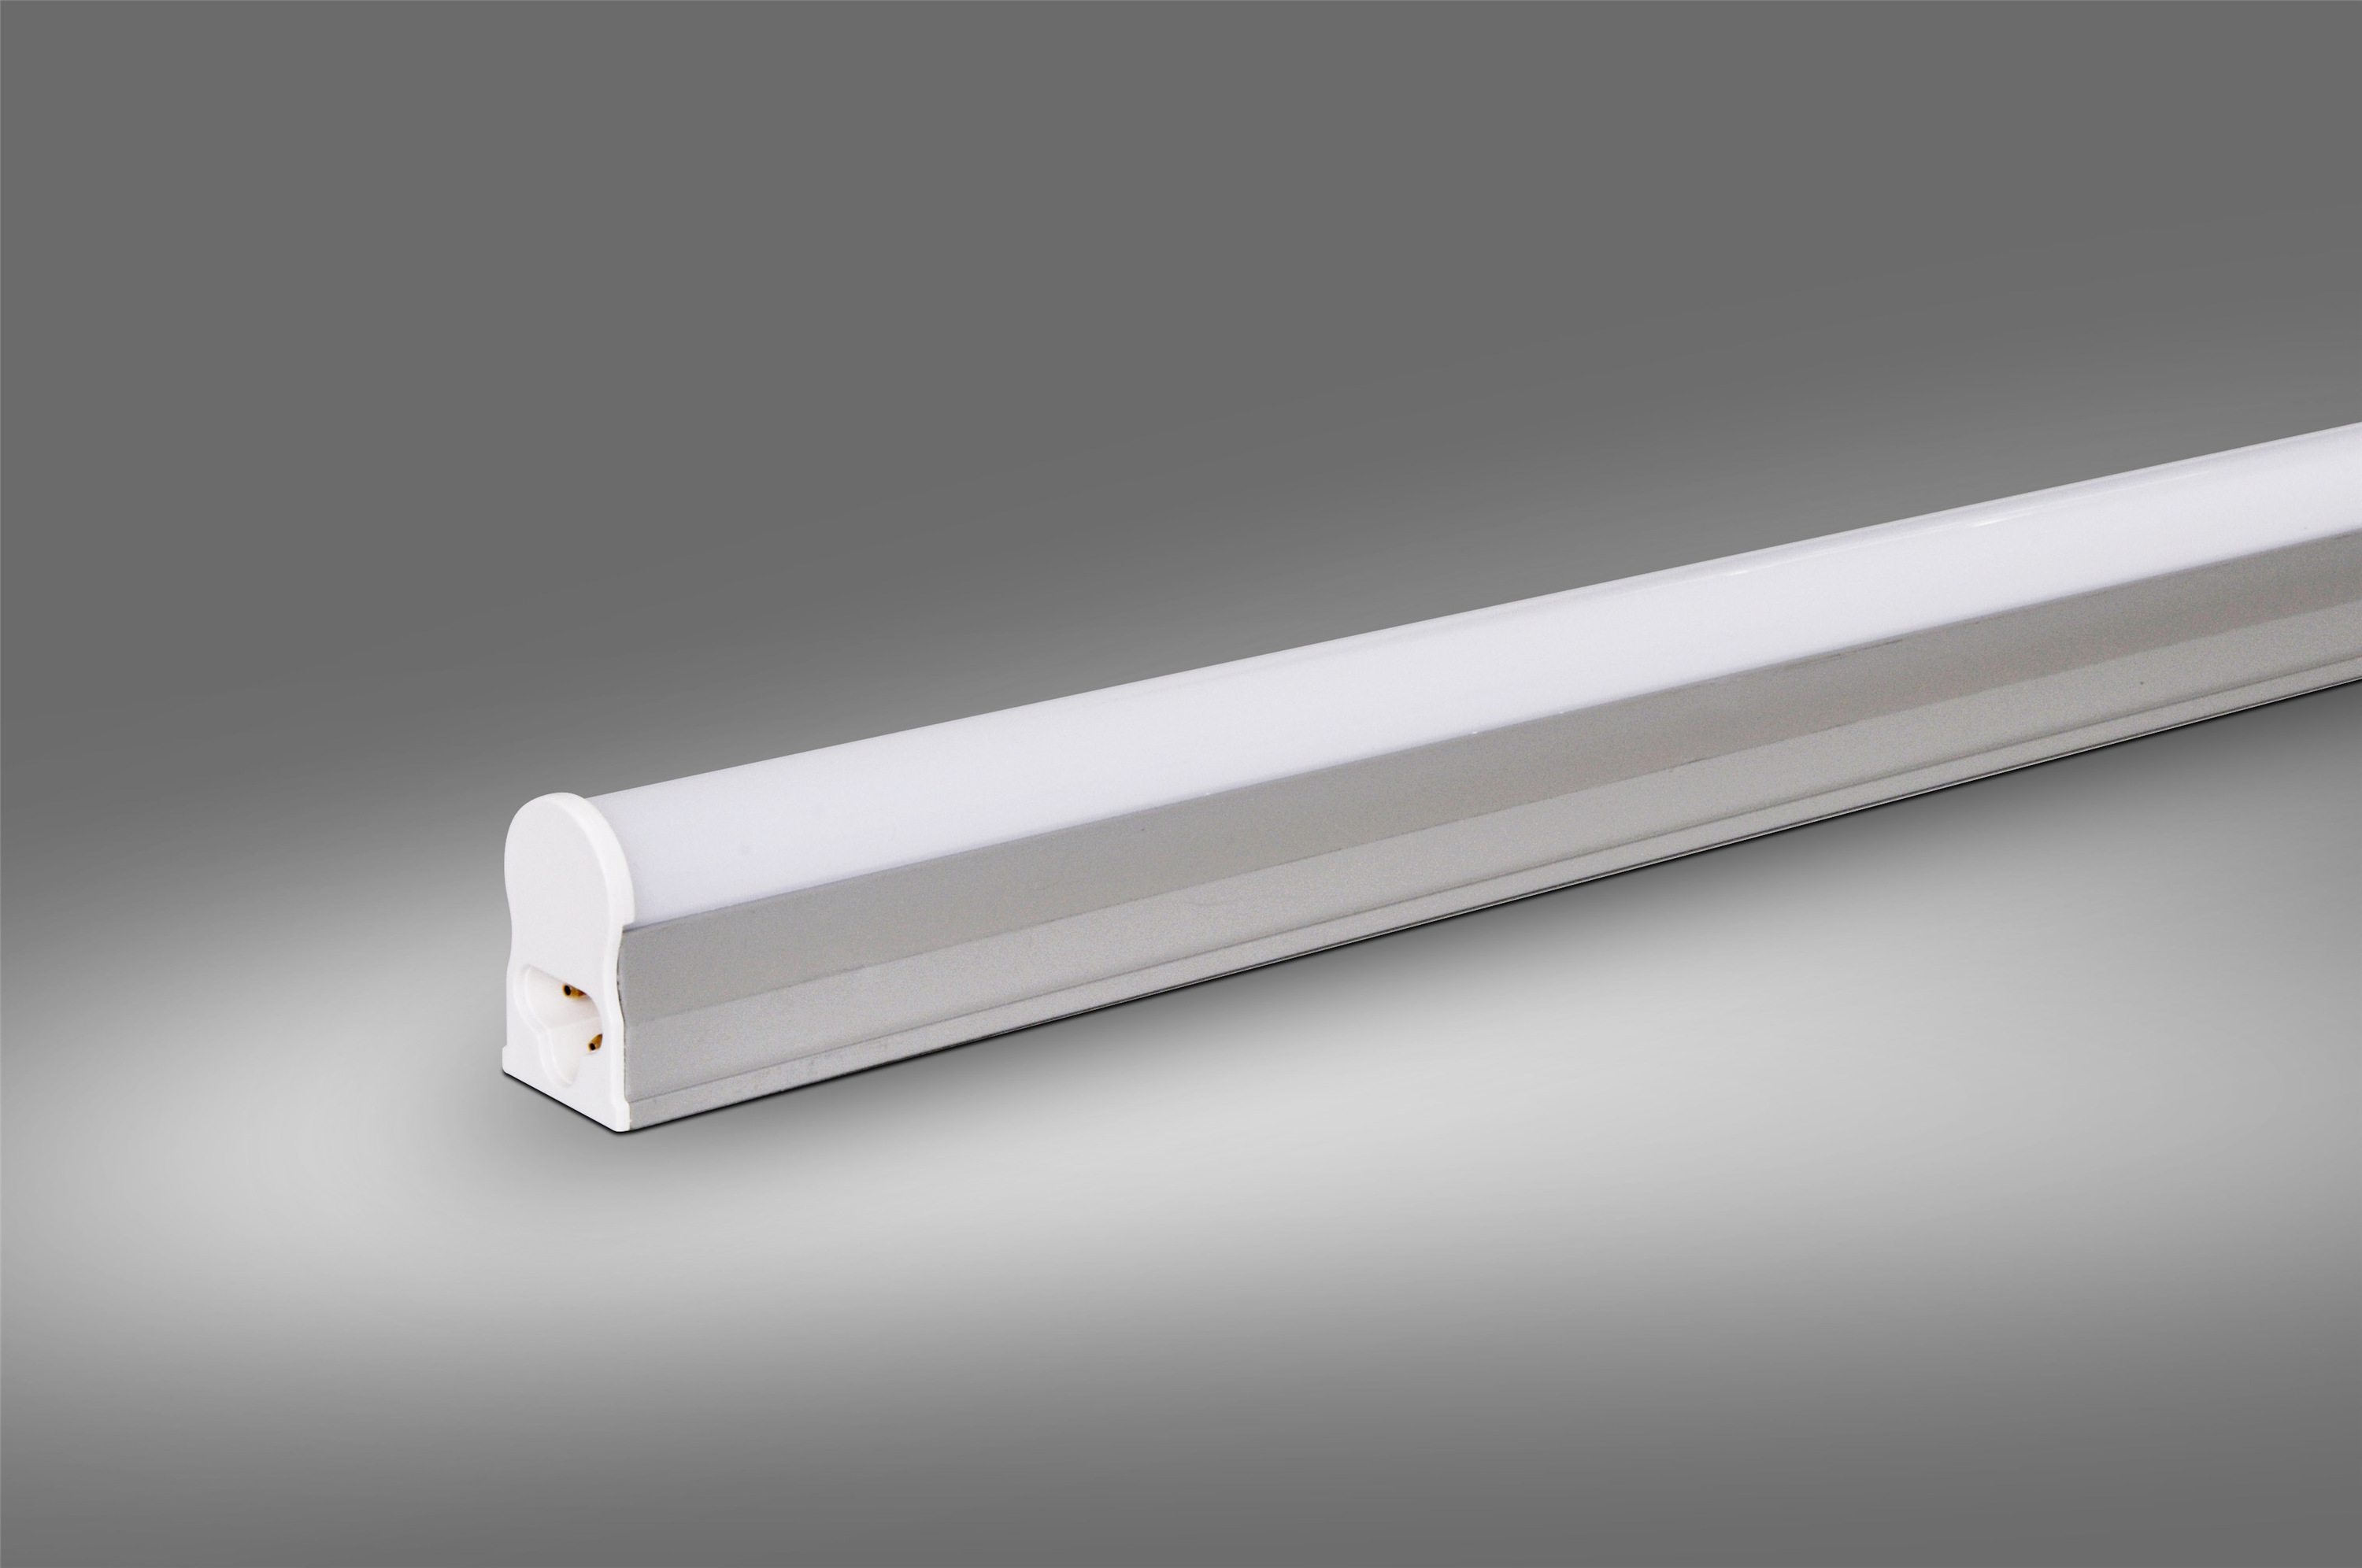 LED T5 integrated Batten light 0.6m 9w for home tube lighting